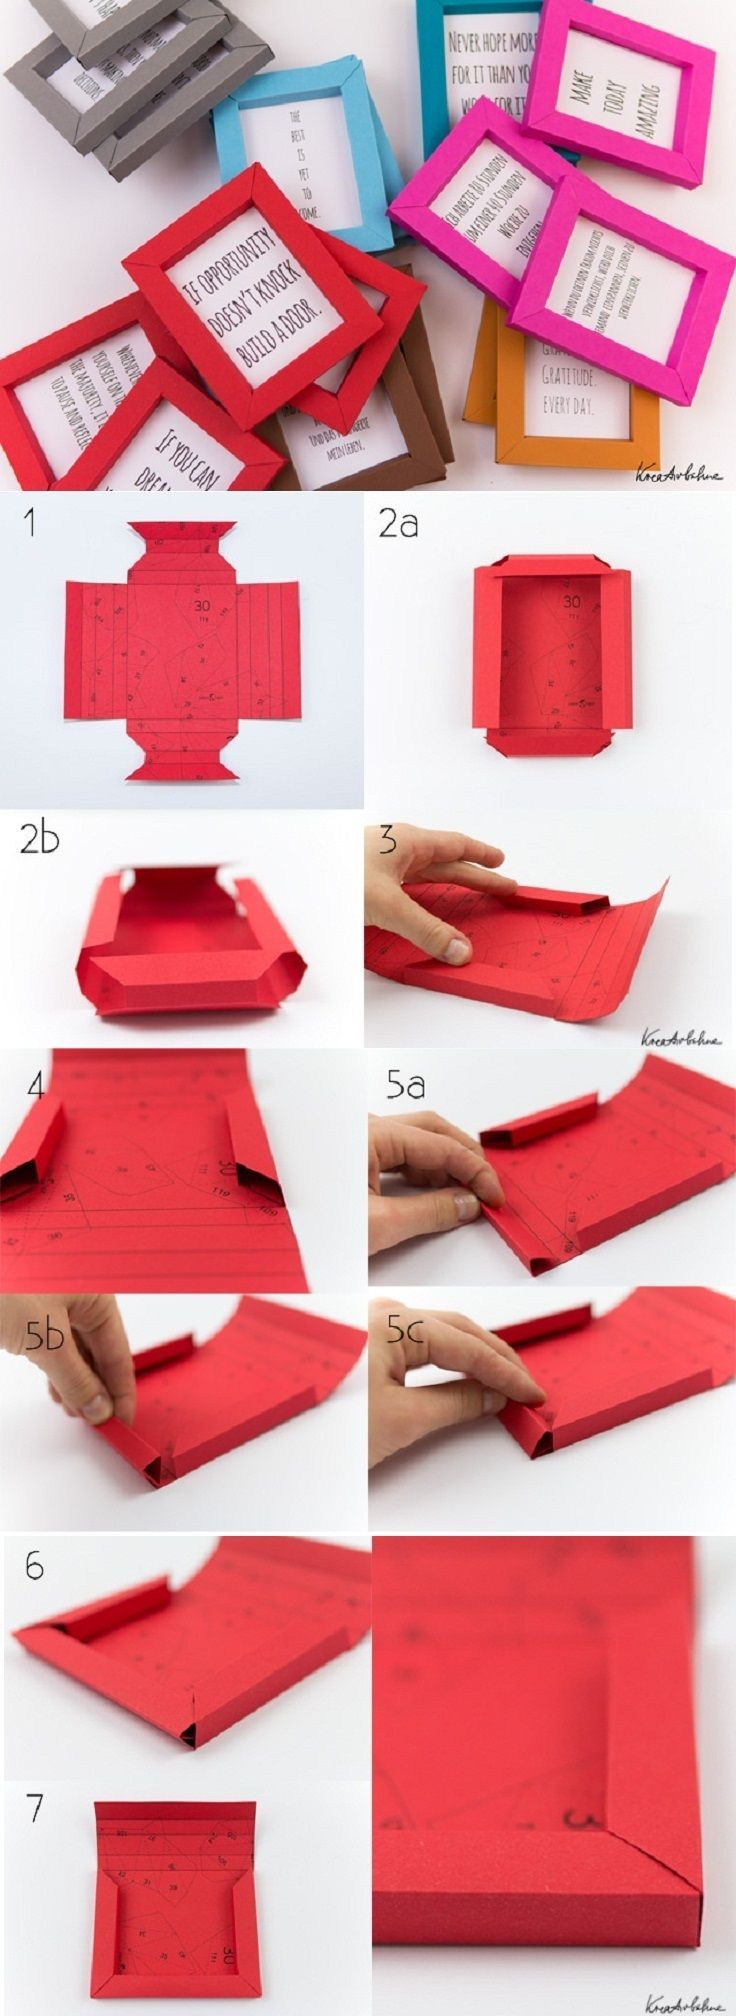 Diy Paper Frame Tutorial and Printable - 10 Easy Paper DIYs to Soothe Your Crafting Needs